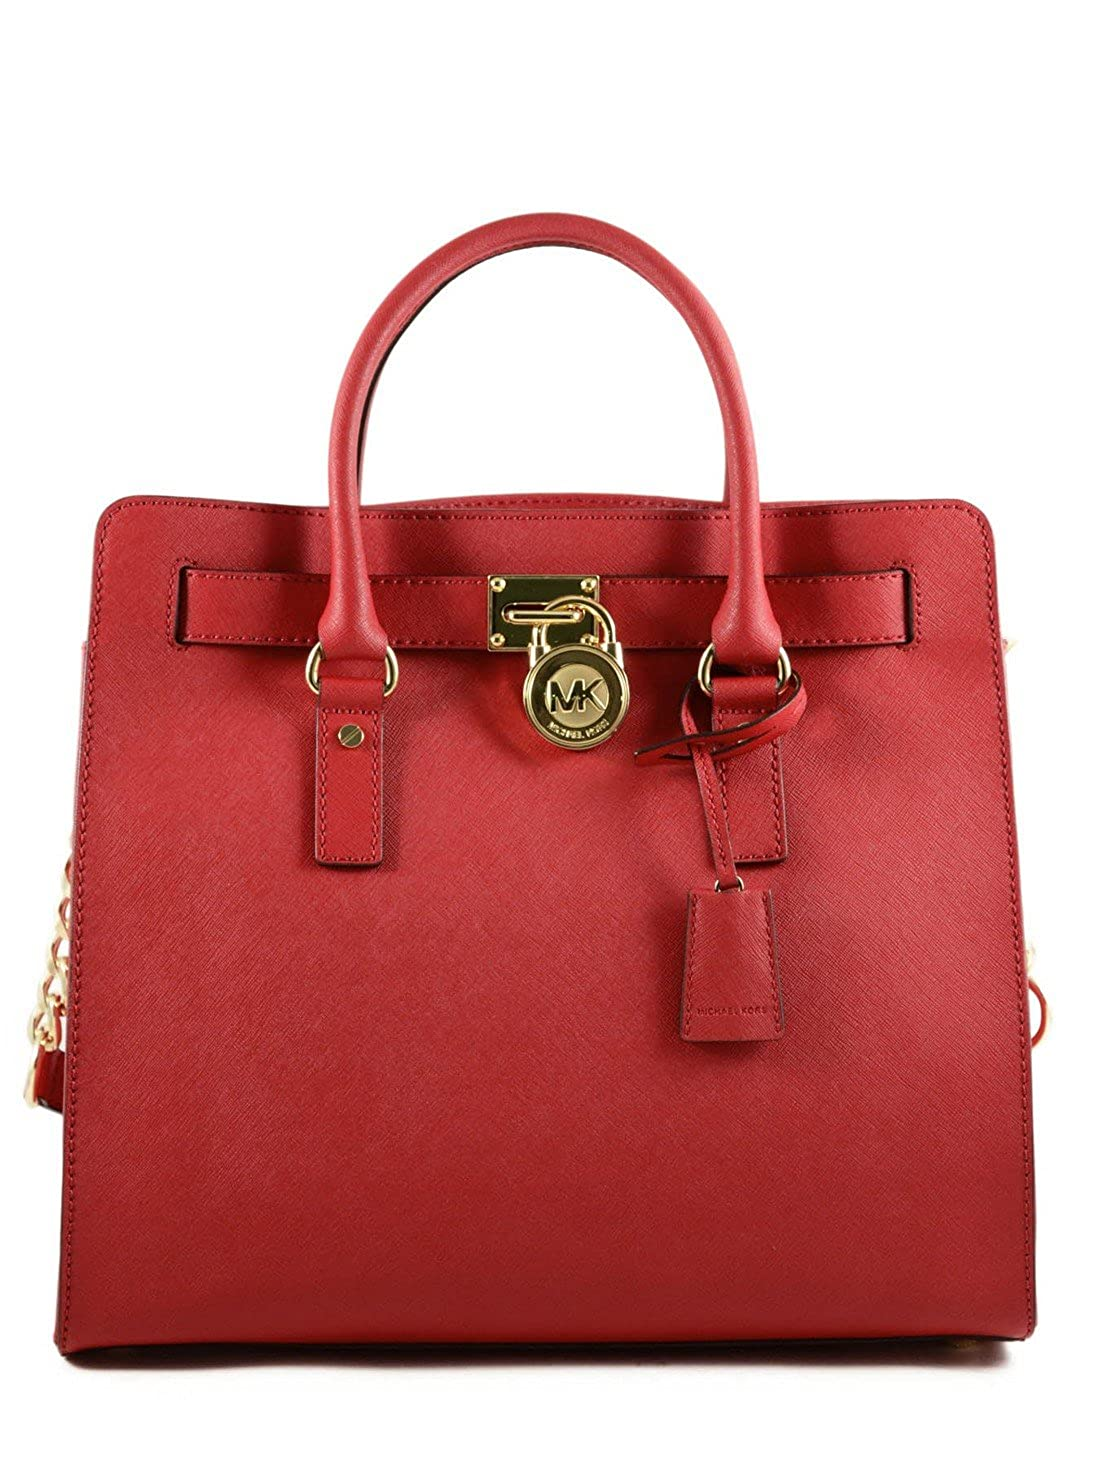 0cf41f276076 Amazon.com: Michael Kors Specchio Hamilton Satchel Red: Shoes